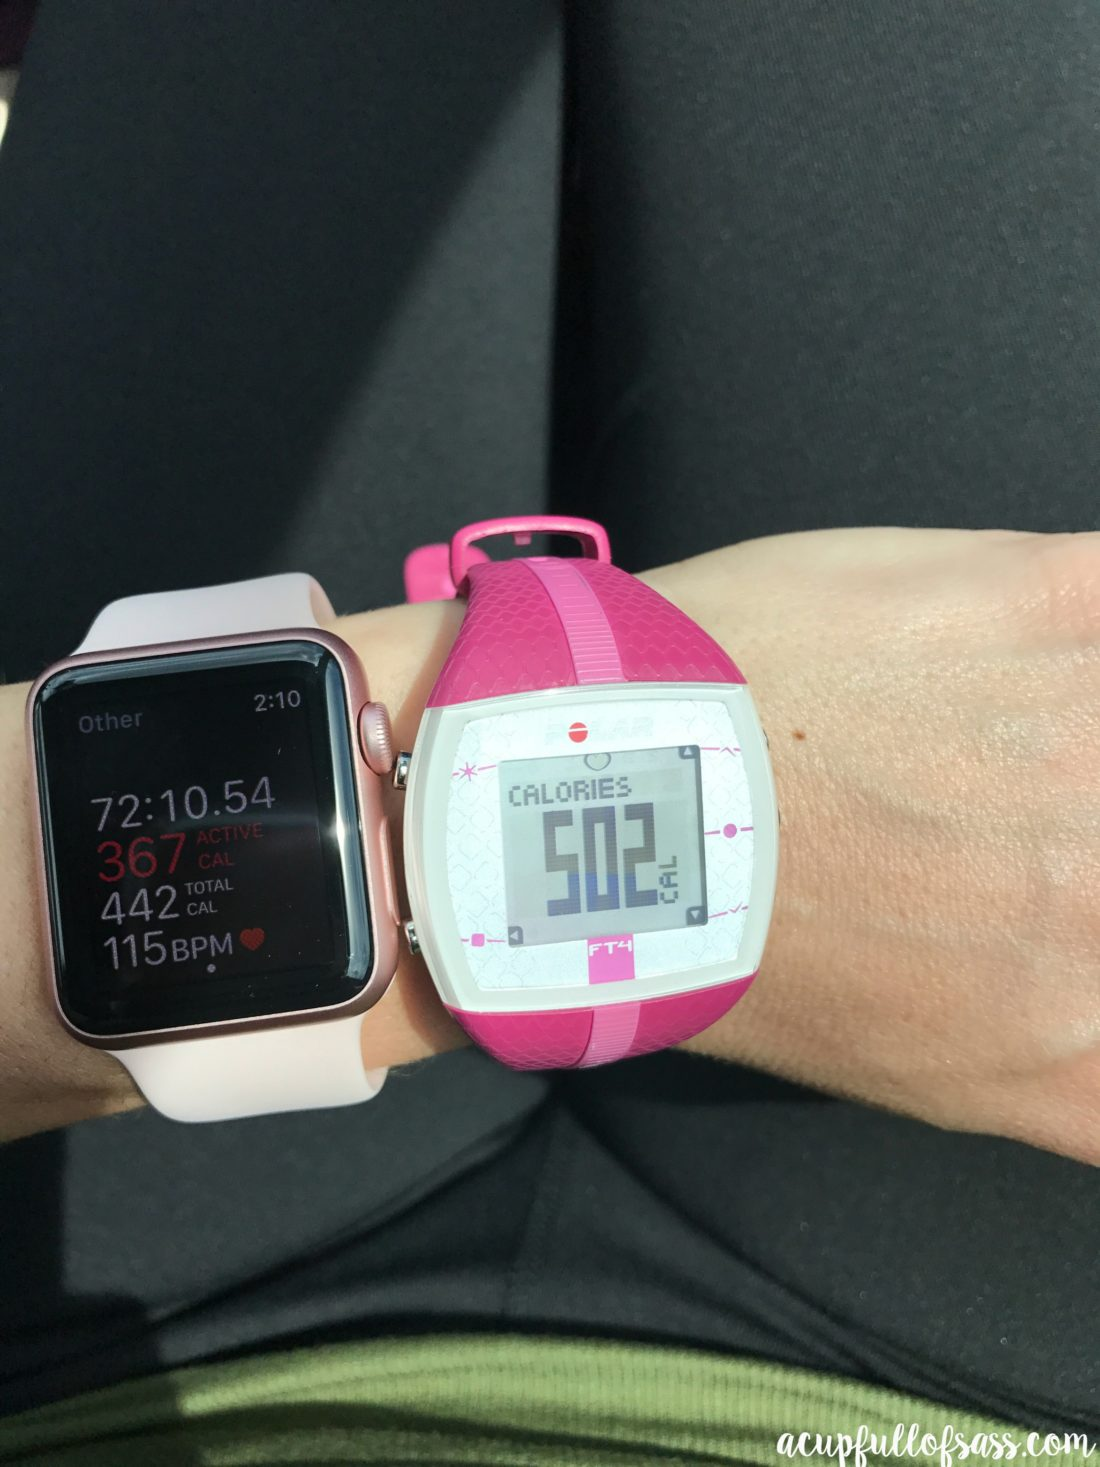 Apple Watch vs Polar Watch FT4